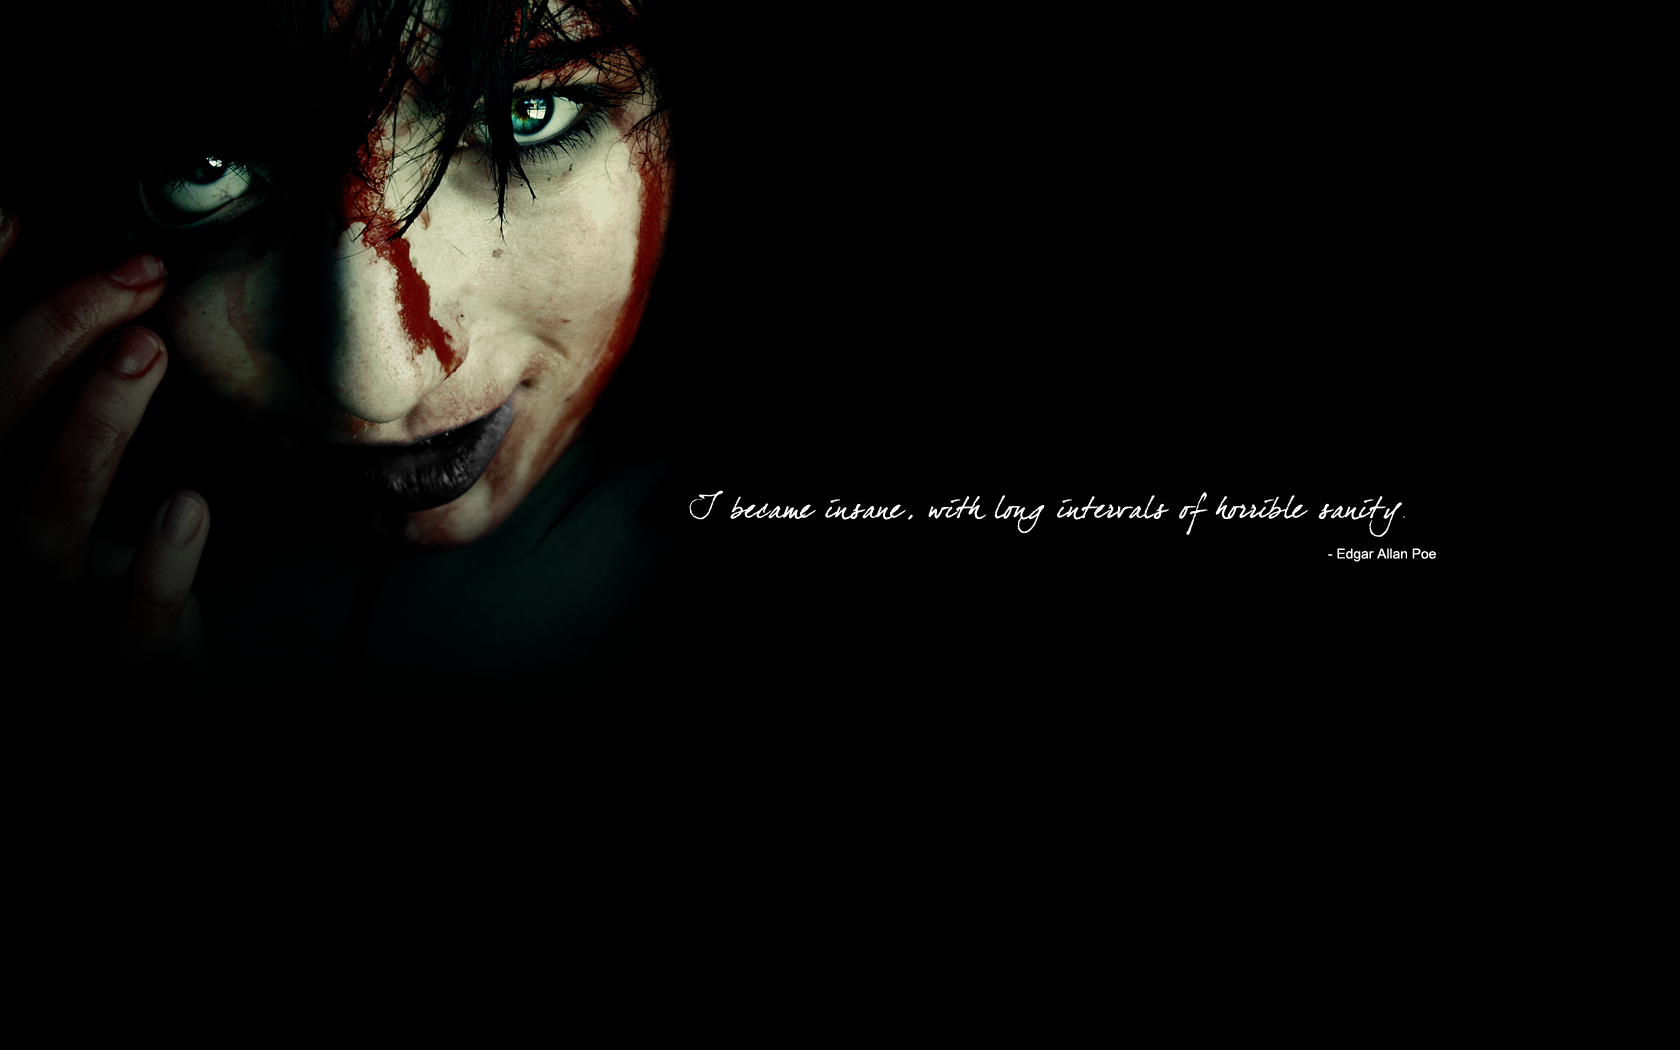 Quotes Edgar Wallpaper 1680x1050 Quotes Edgar Allan Poe 1680x1050